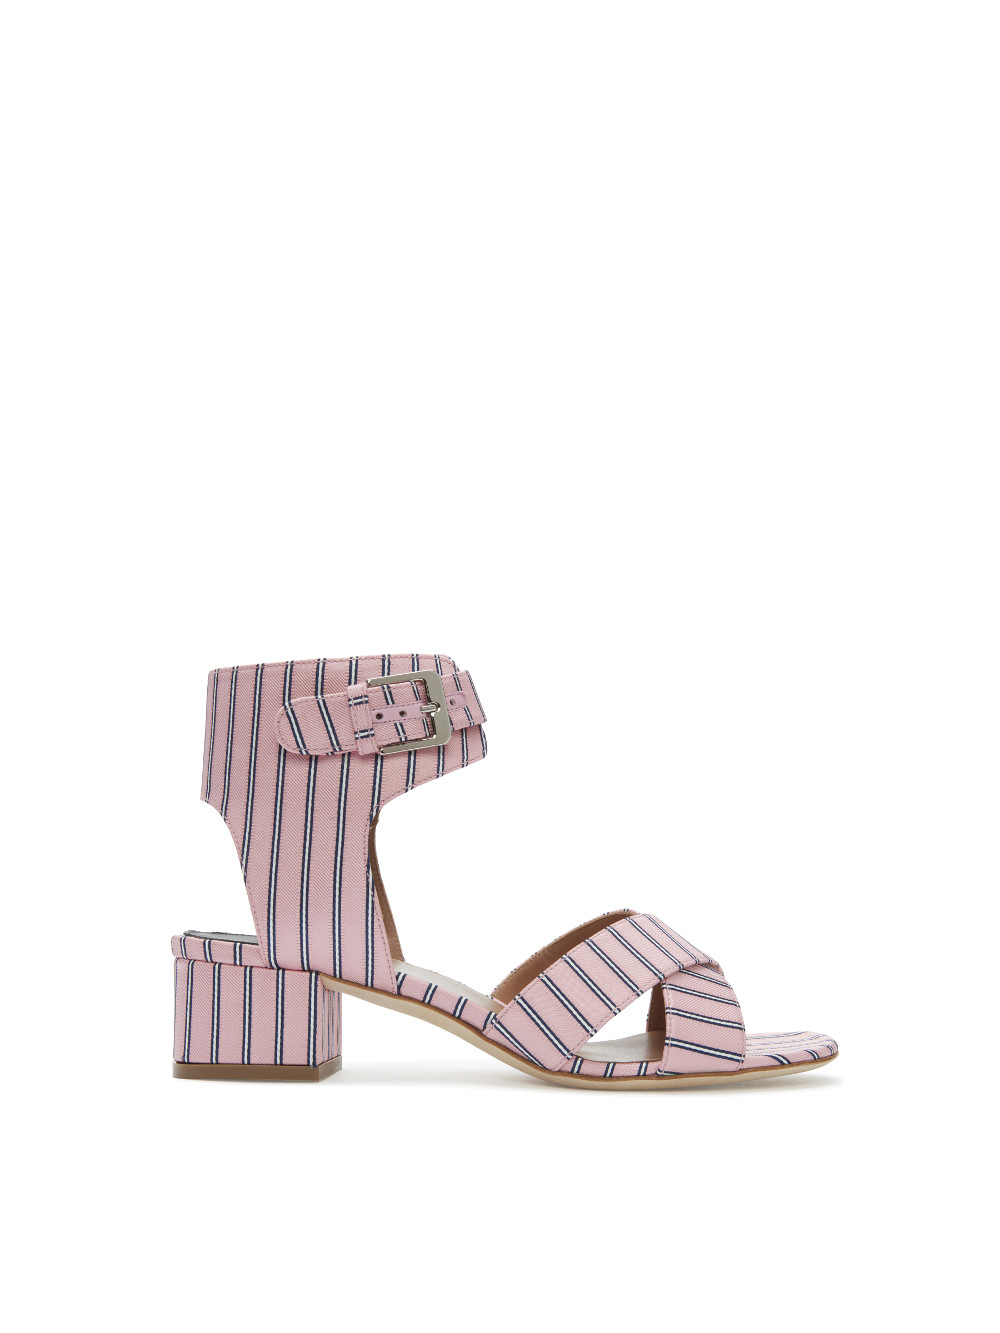 LD_SS19_Teodosia_Stripped Canvas_Pink_7591.jpg